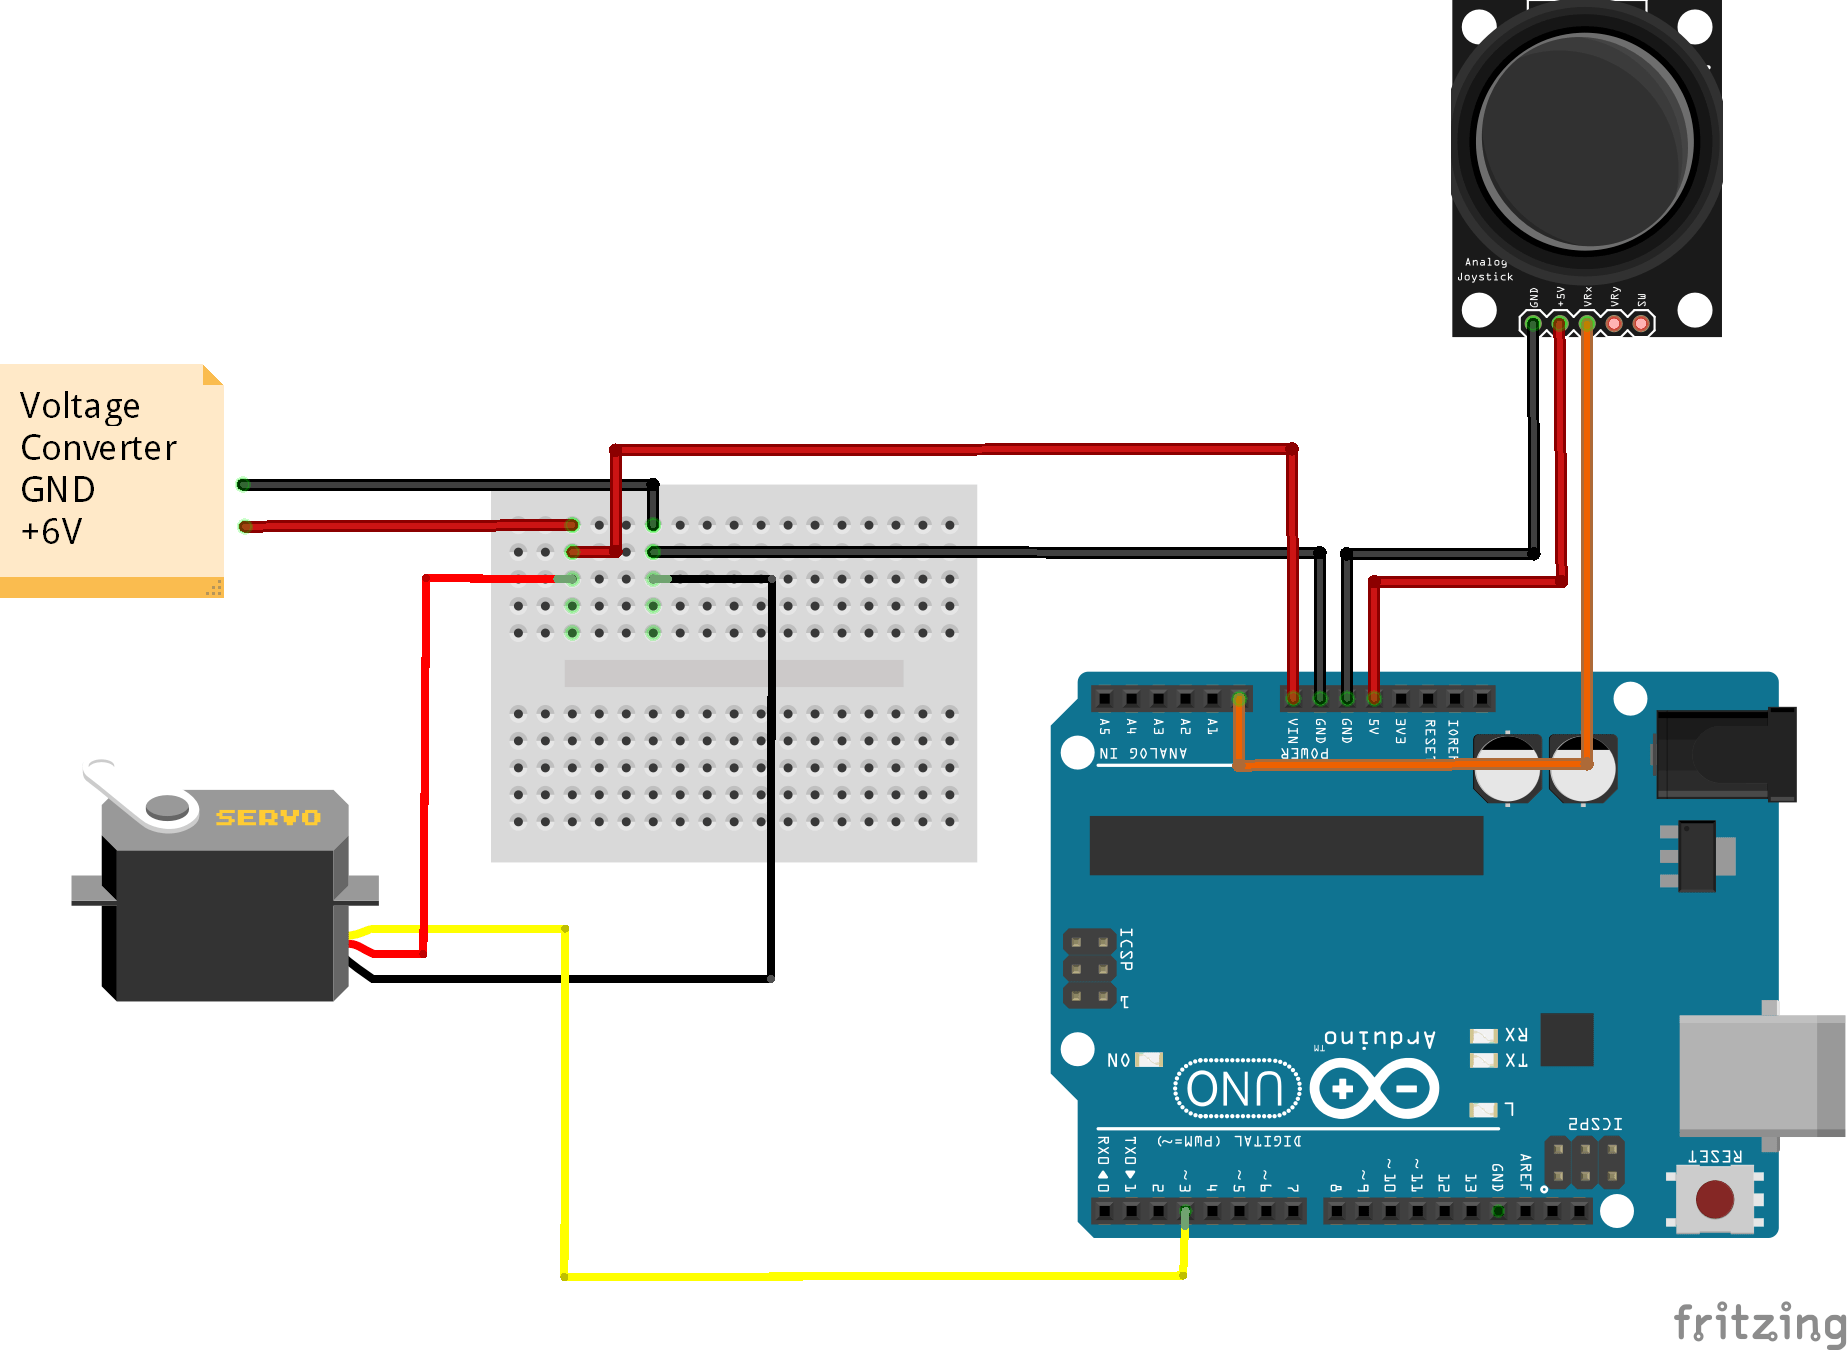 Controlling Servo Angle using Joystick in Arduino IDE